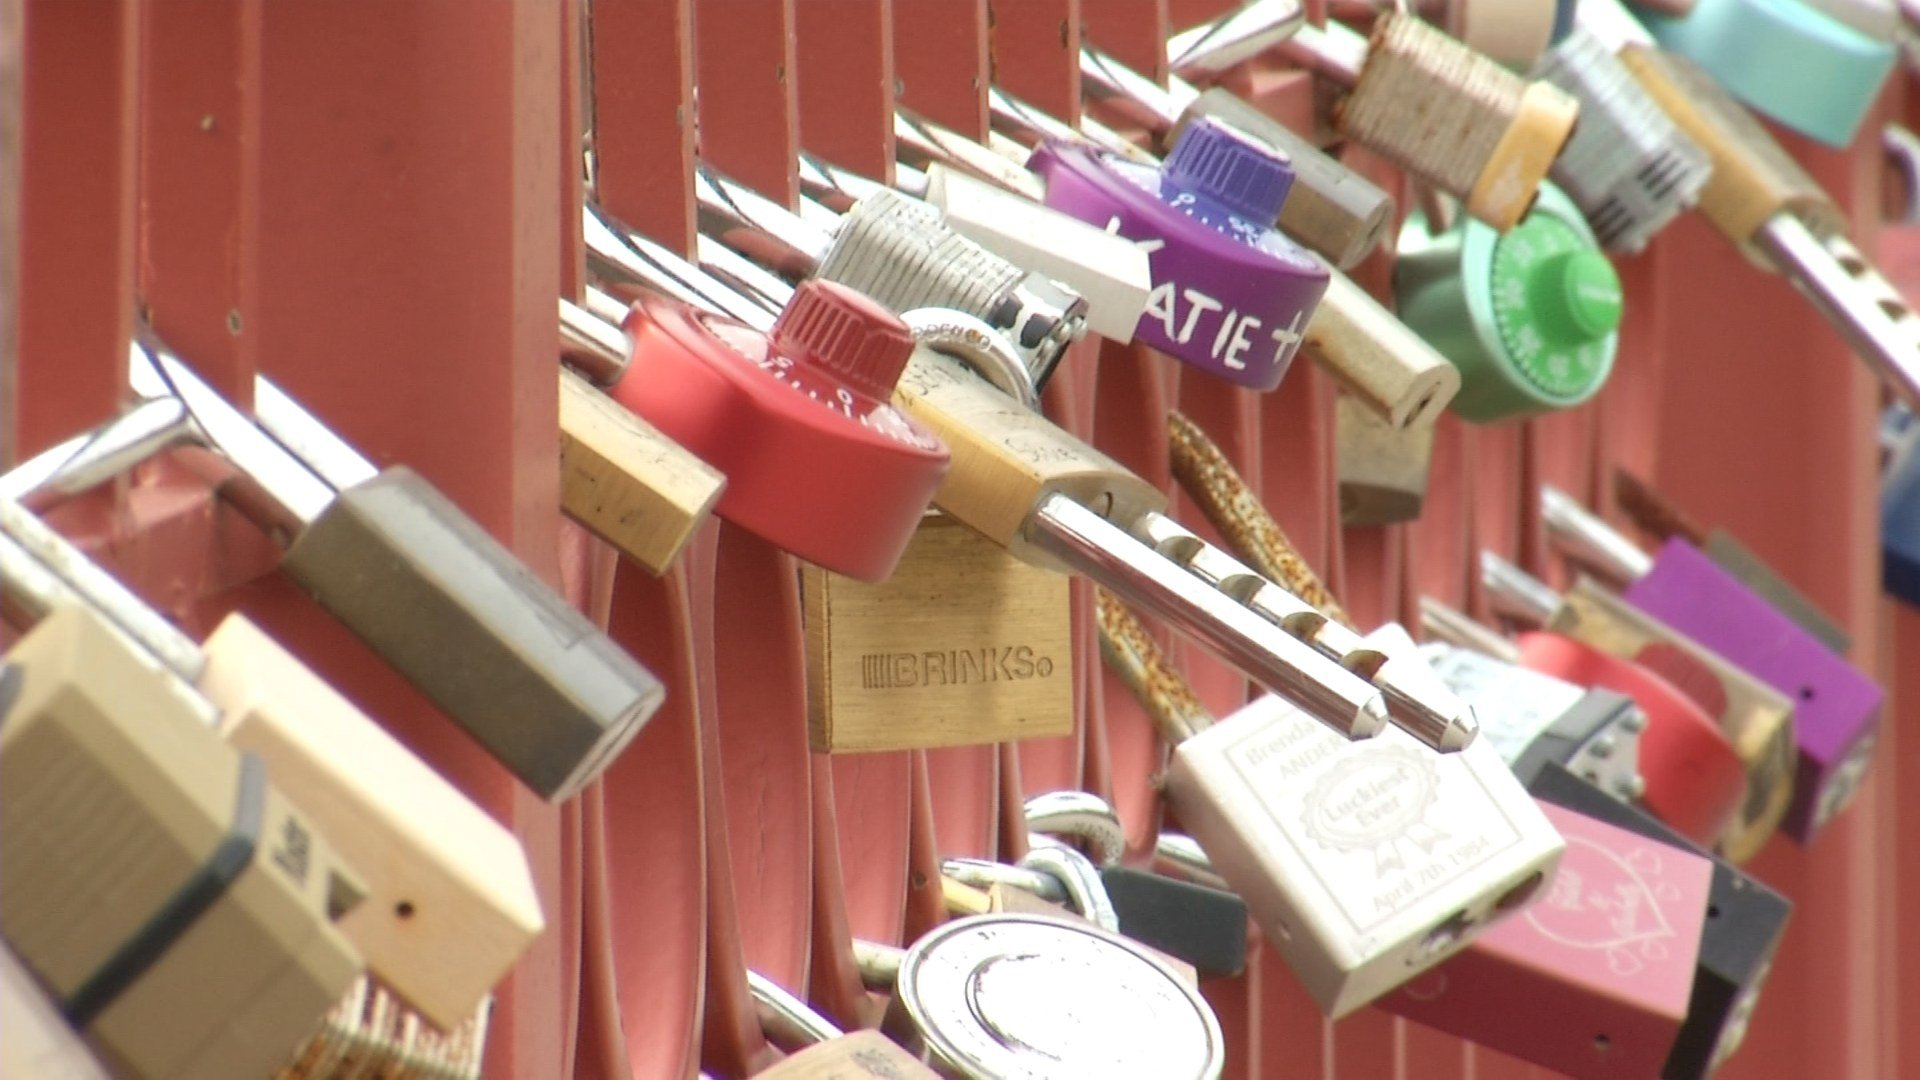 Couples placing locks on the historic Old Red Bridge as a symbol of lasting love hasbecome a recent tradition in Kansas City. (KCTV5)